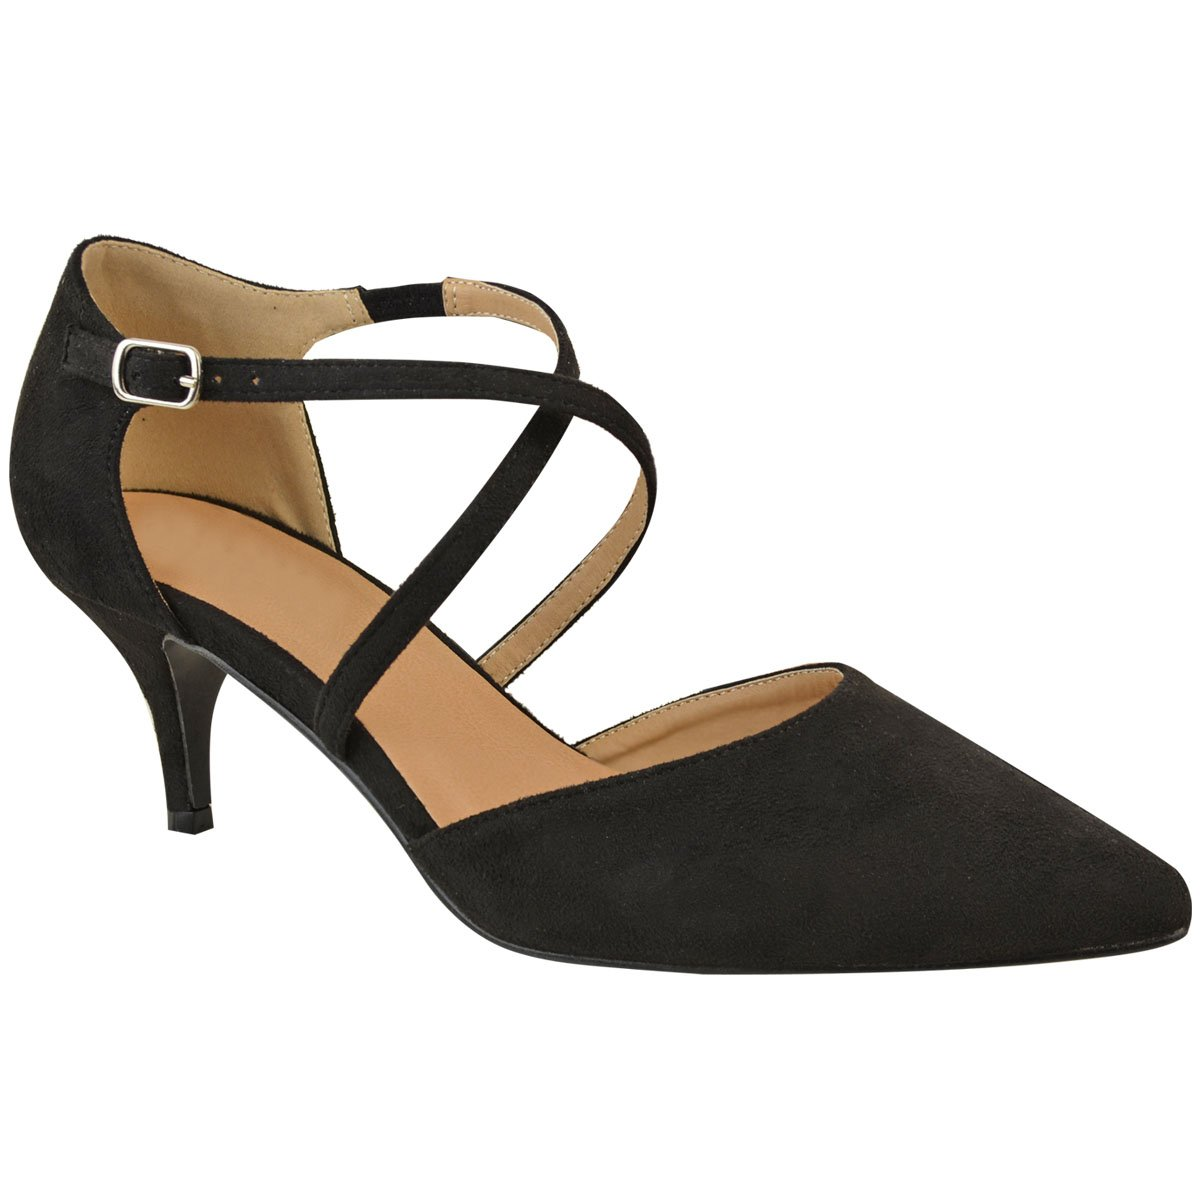 f6069806c953 WOMENS LADIES LOW MID HIGH KITTEN HEEL PUMPS POINTED TOE WORK COURT SHOES  SIZE Fashion Thirsty